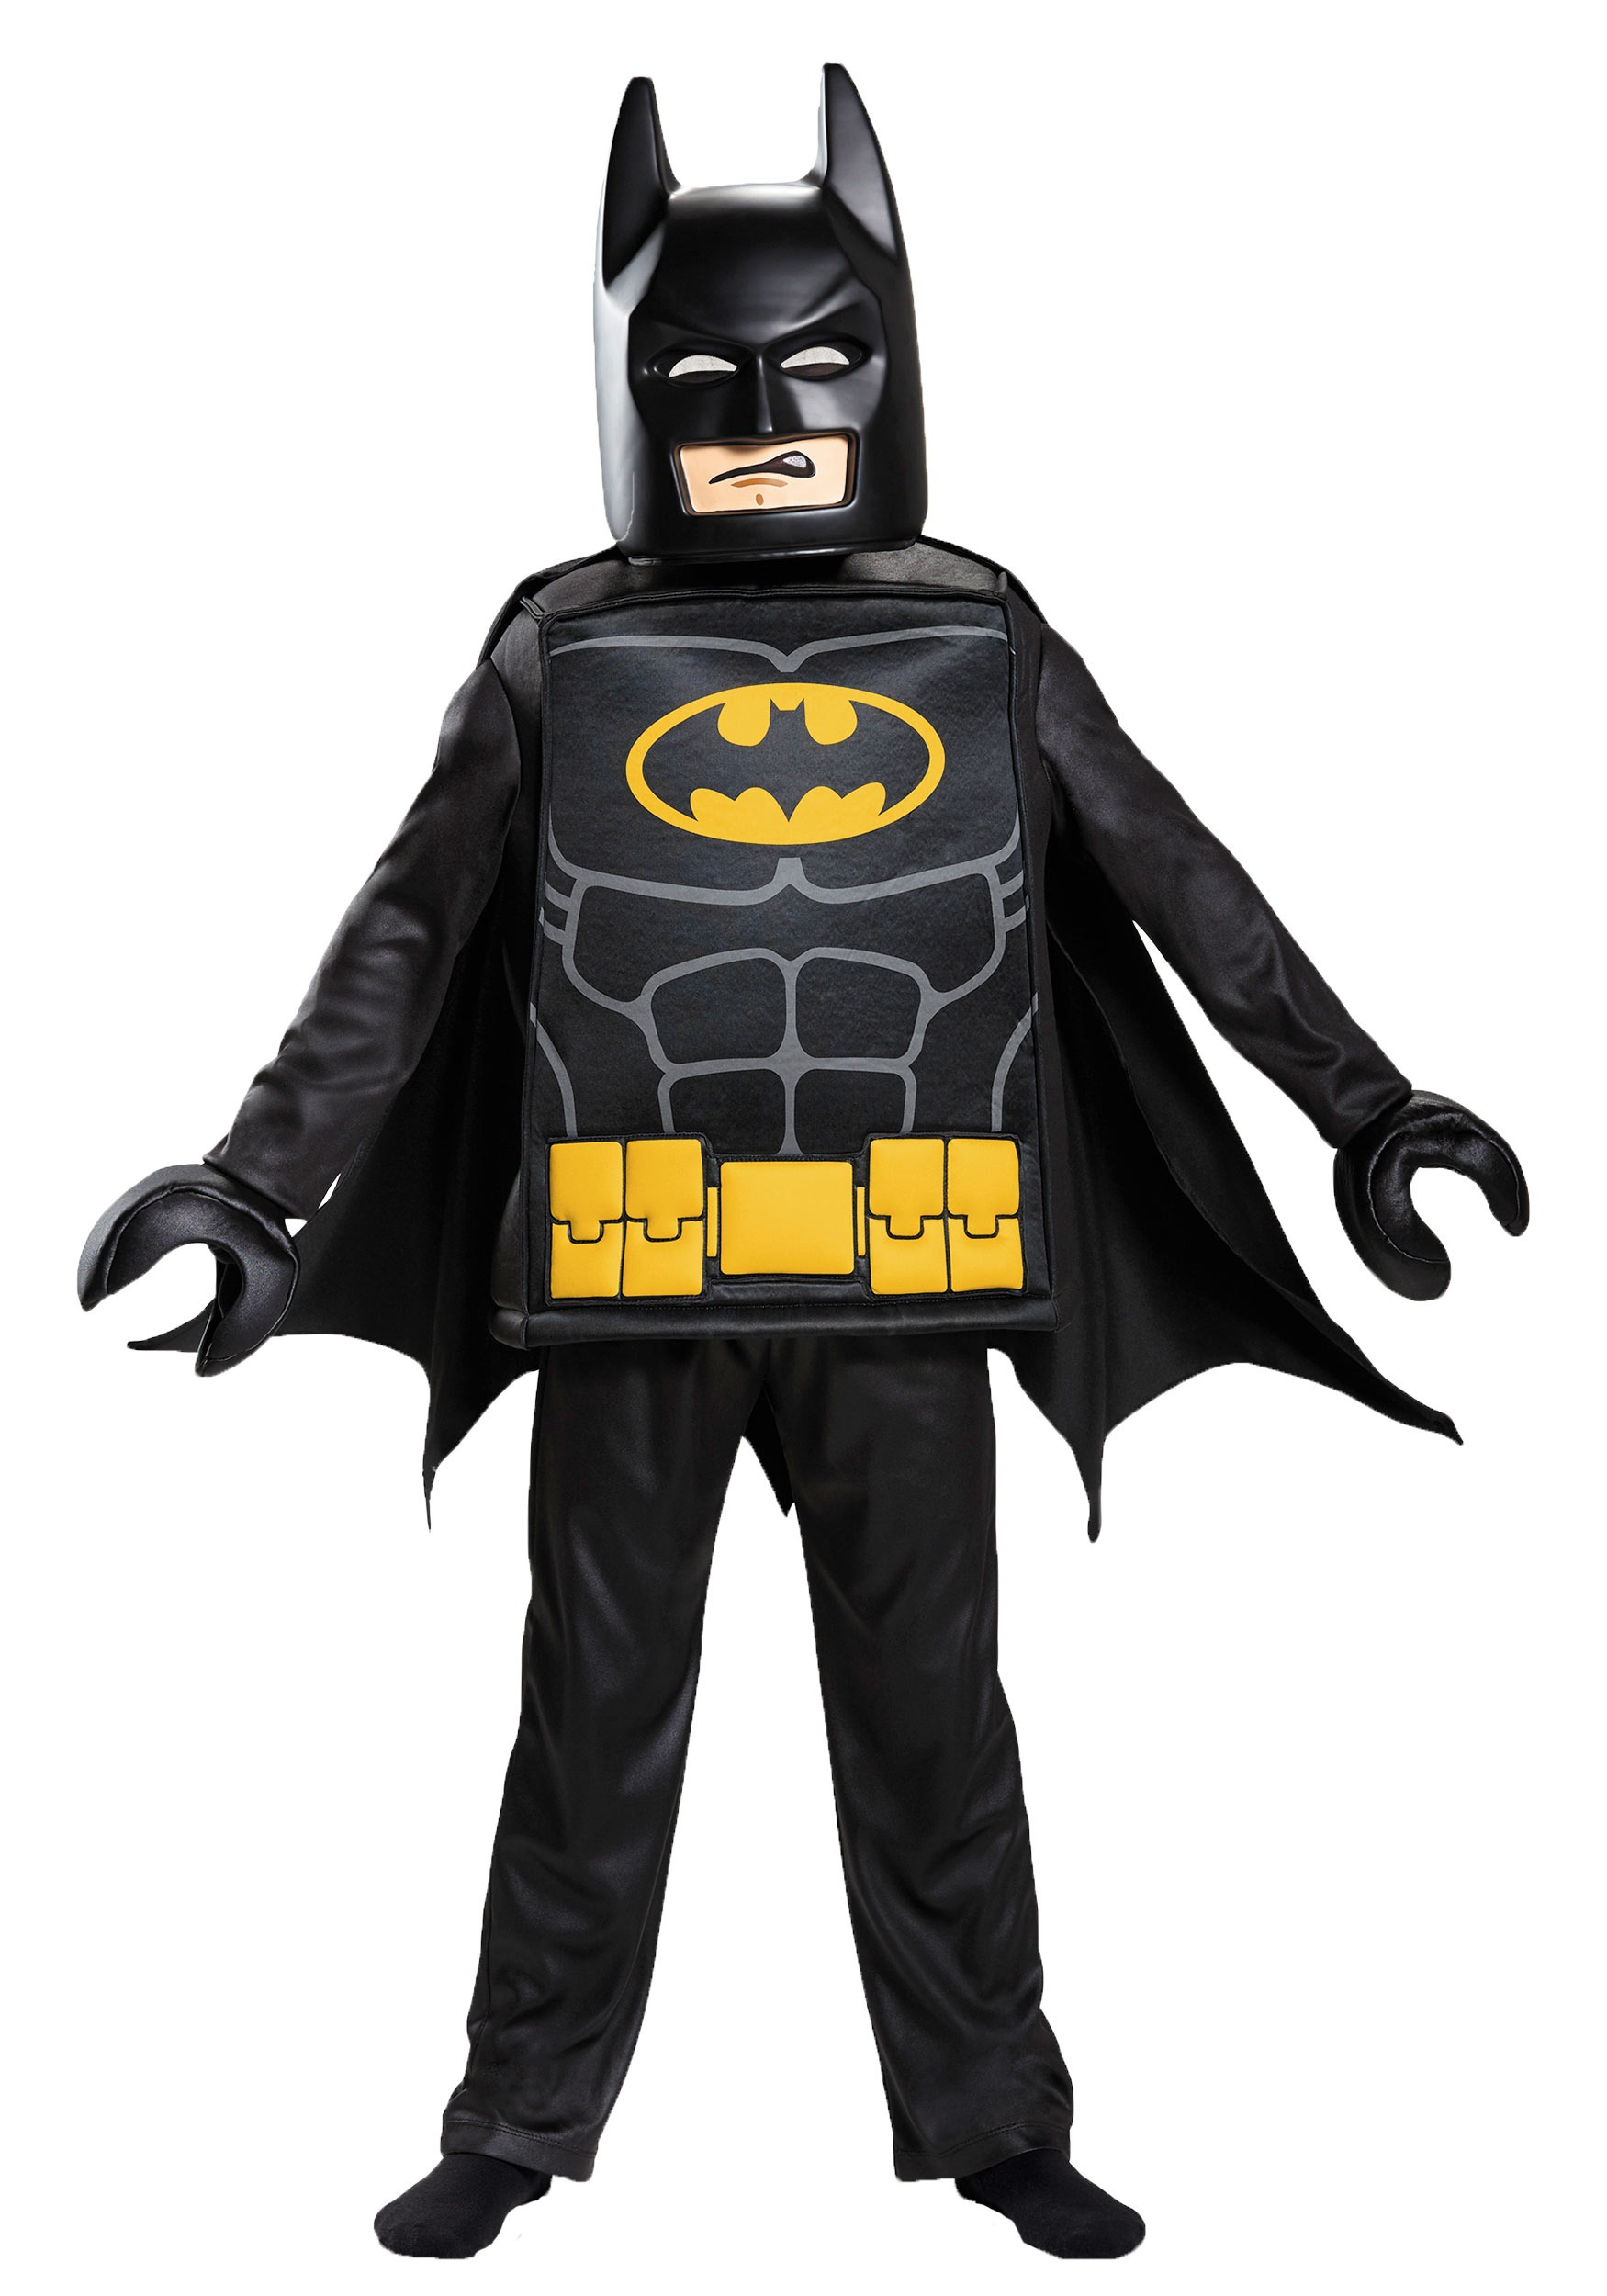 Lego batman movie batman costume for kids boys lego batman movie batman costume voltagebd